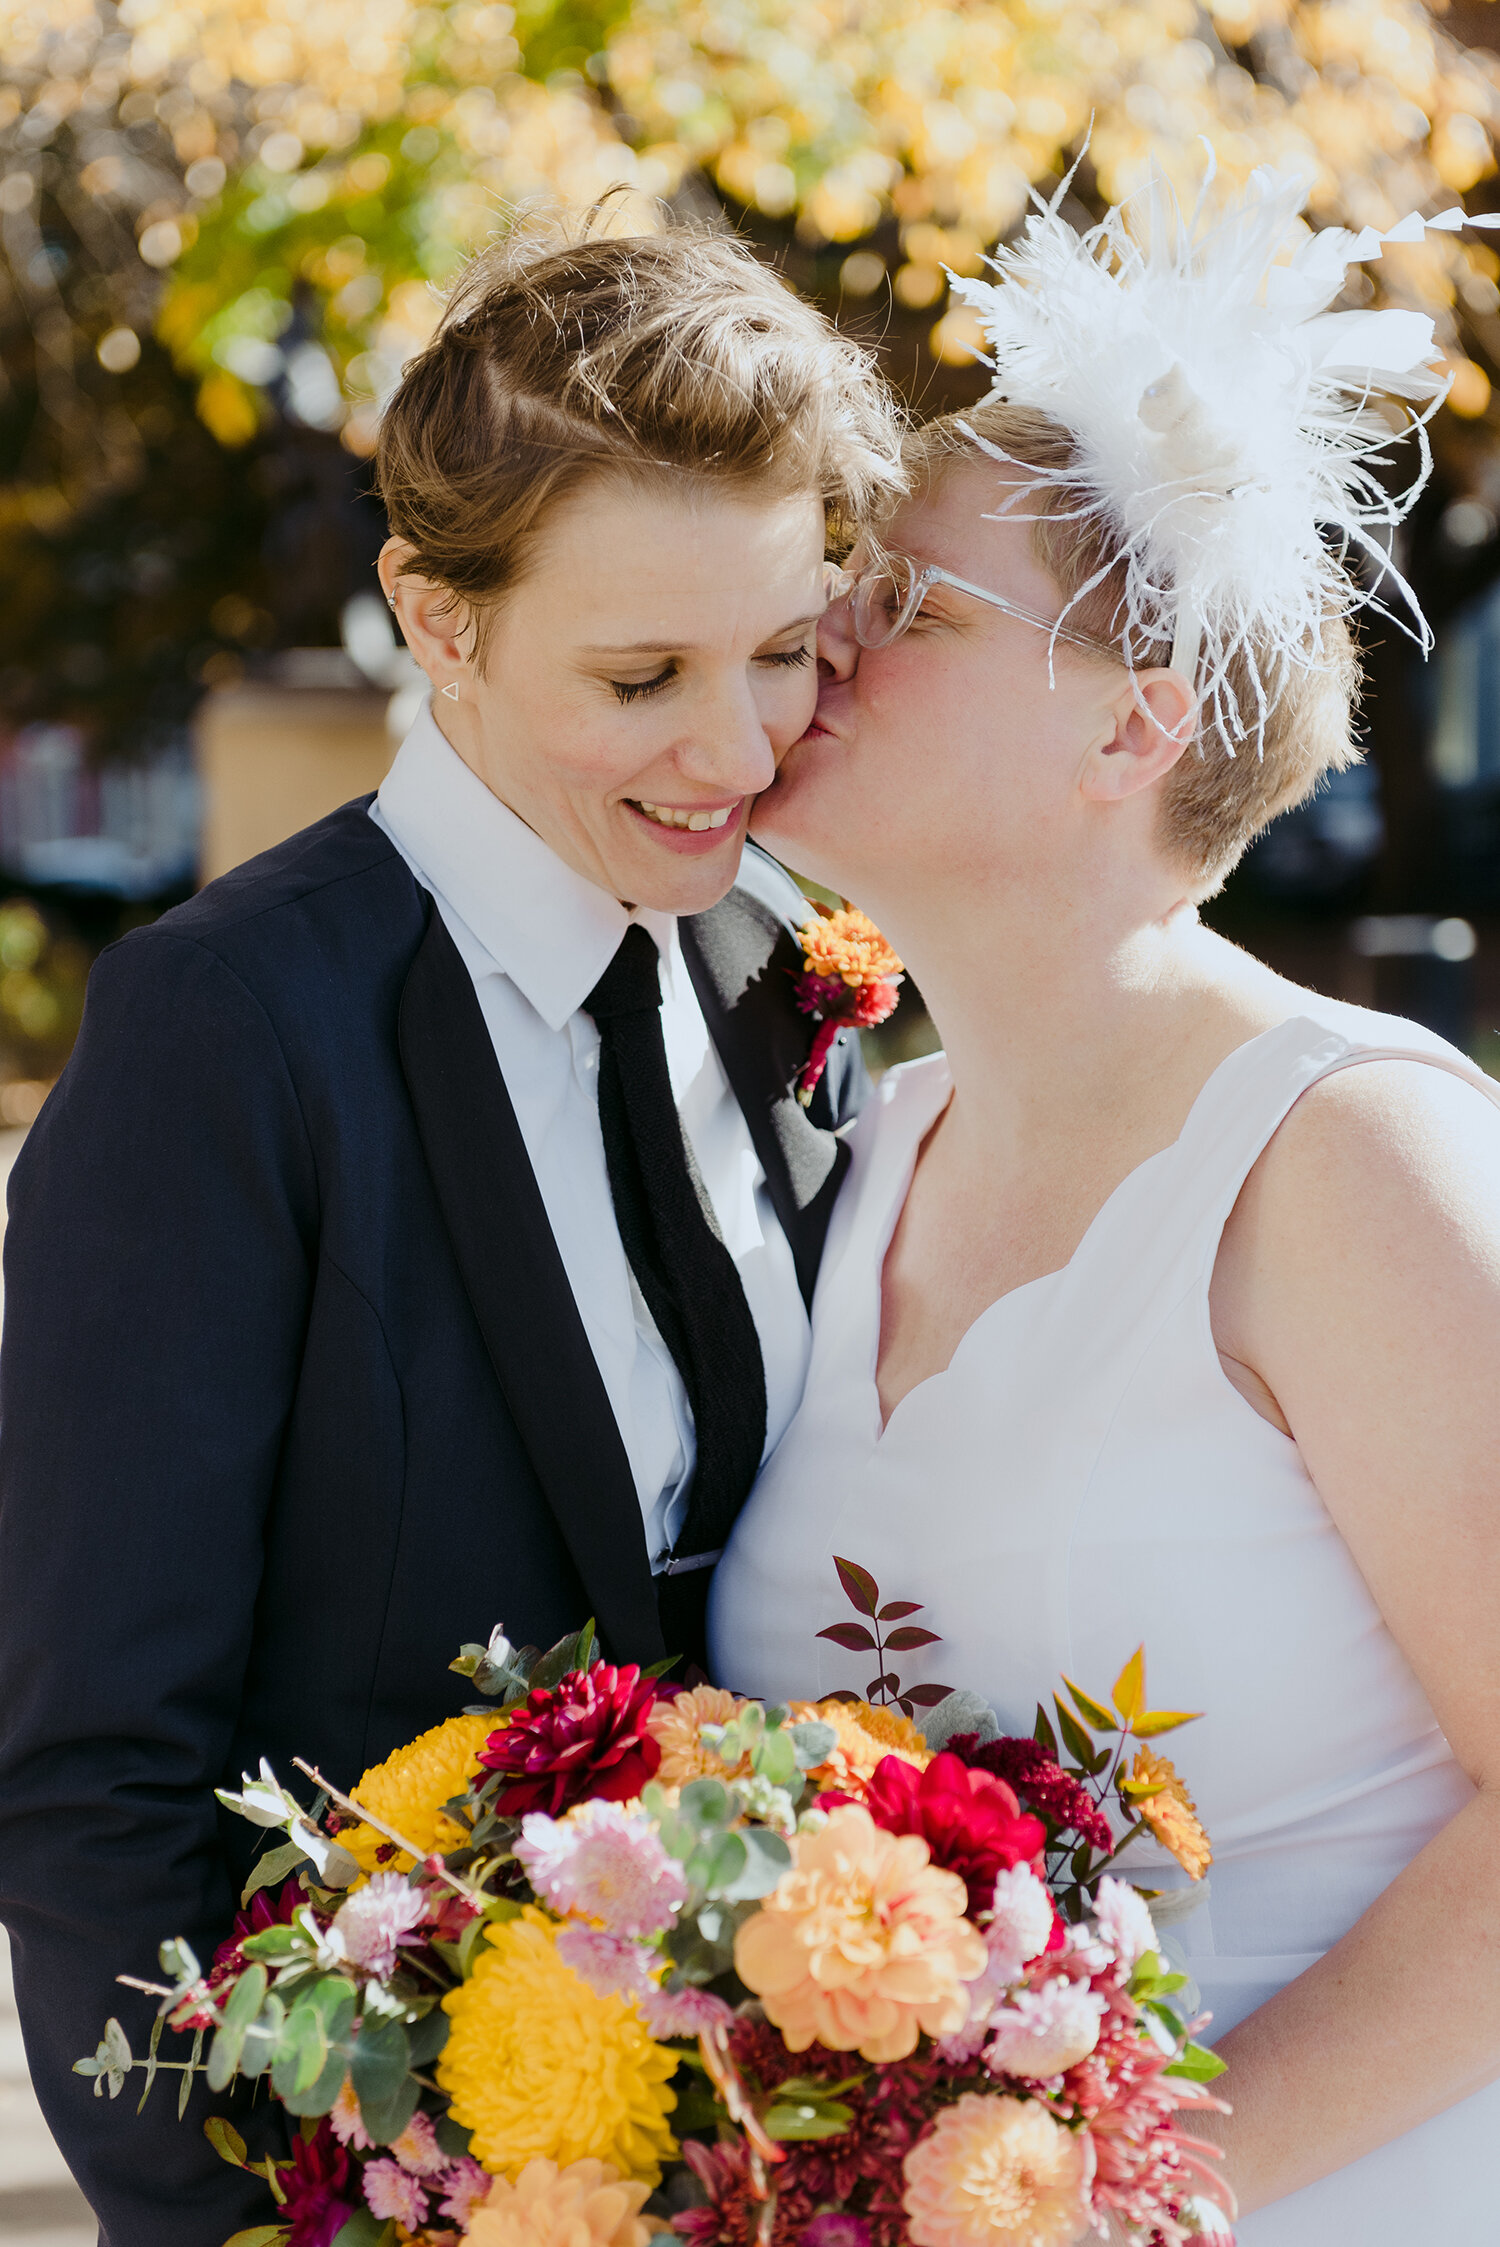 Lesbian and Gay Wedding Photographer | Rivets & Roses | Photo by Tara Sloane